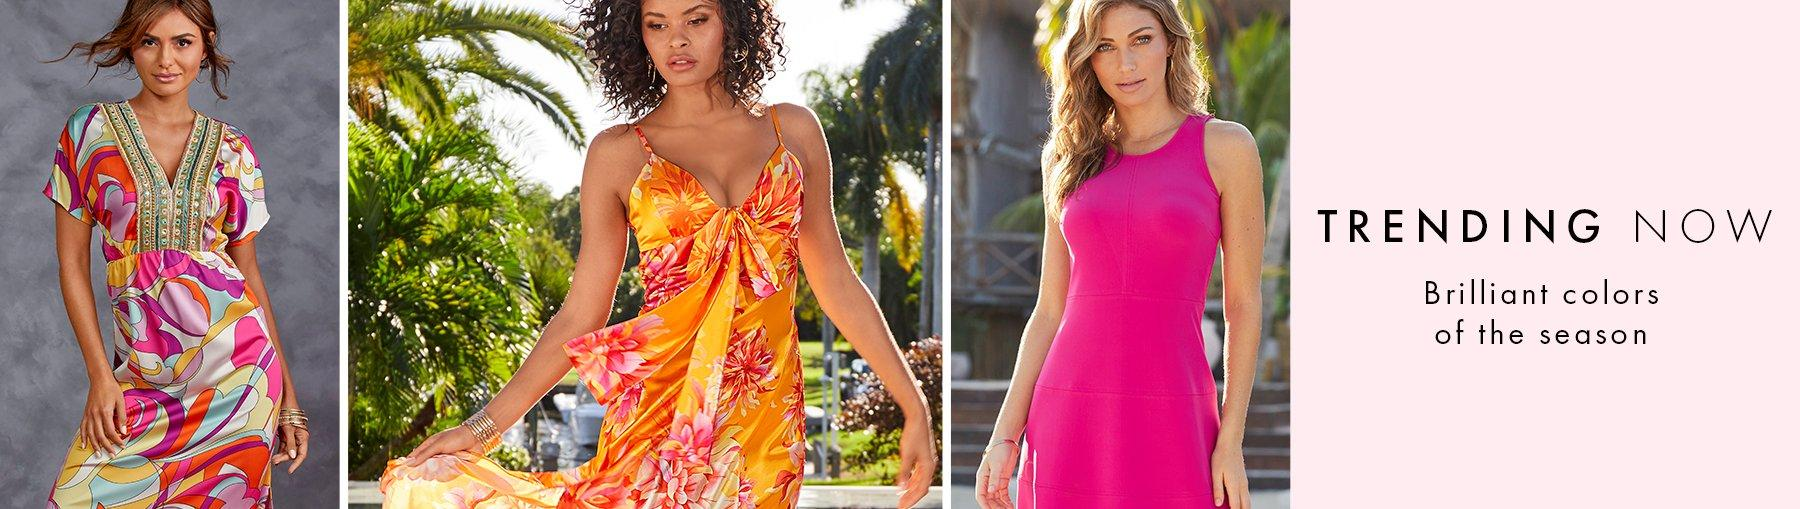 left model wearing a multicolored paisley print dress with gold embellished neckline. middle model wearing an orange and pink floral printed maxi dress. right model wearing a pink sleeveless dress.